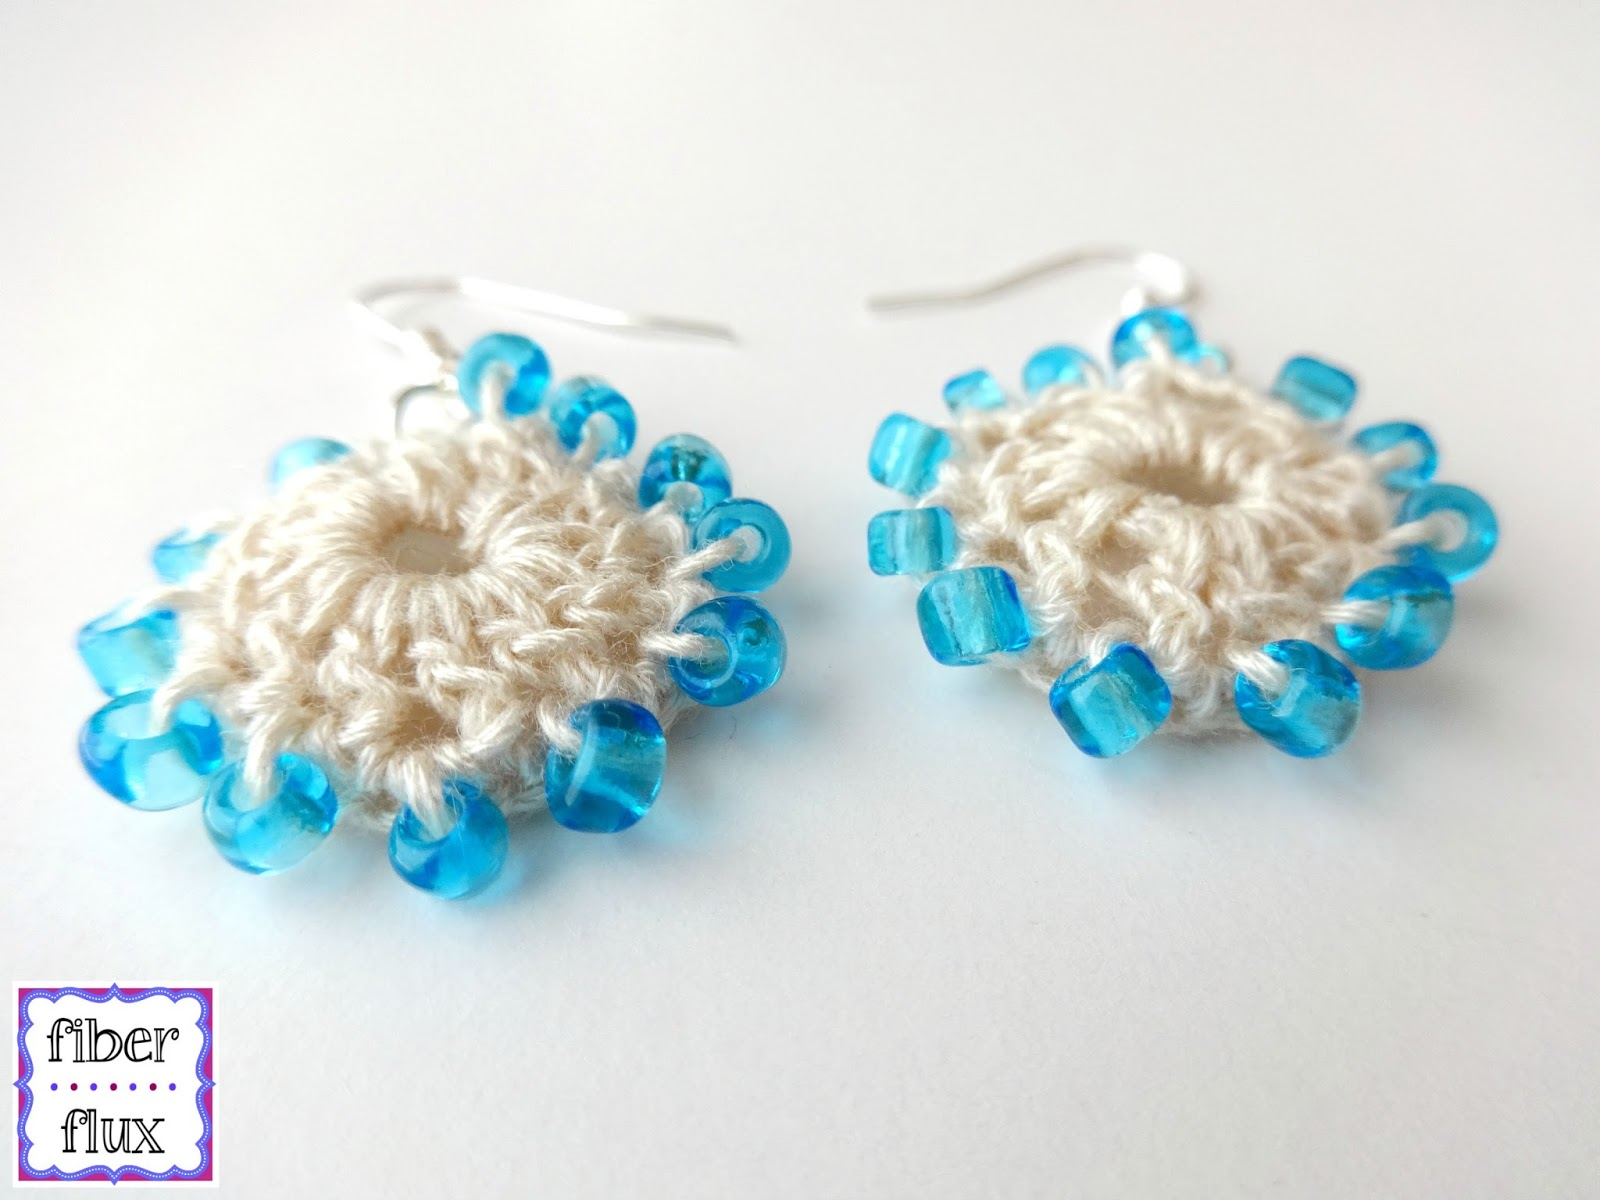 rhpinterestcom wedding earringsrhfiberfluxblogcom earrings beaded bead teal patternbeach crochet funky bohemian beach